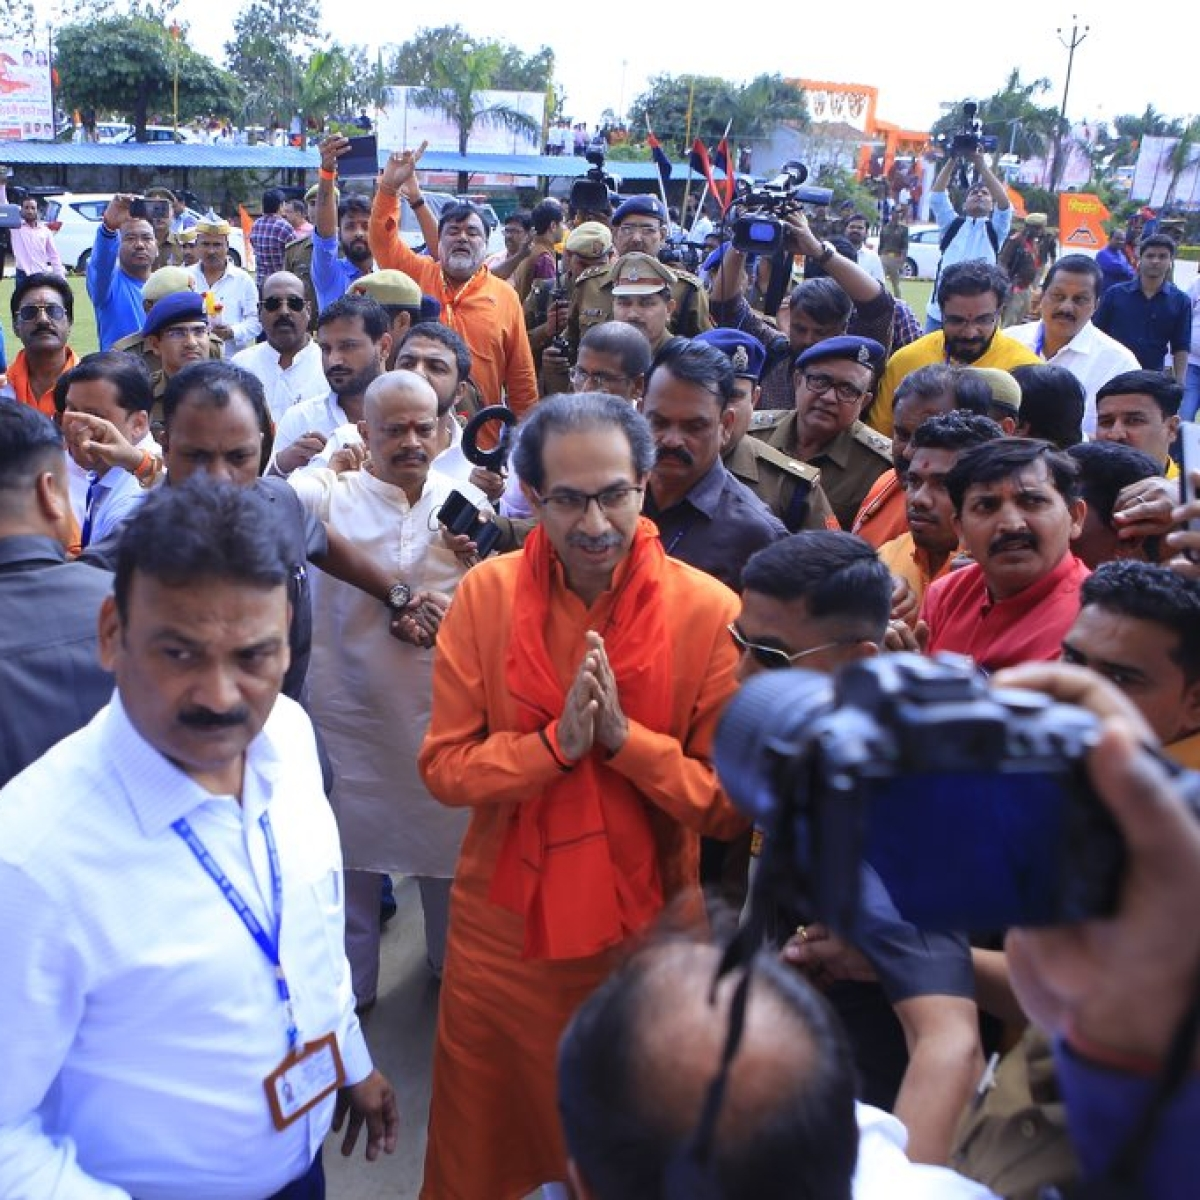 Shiv Sena objects to BJP's criticism of CM Uddhav Thackeray's Ayodhya visit